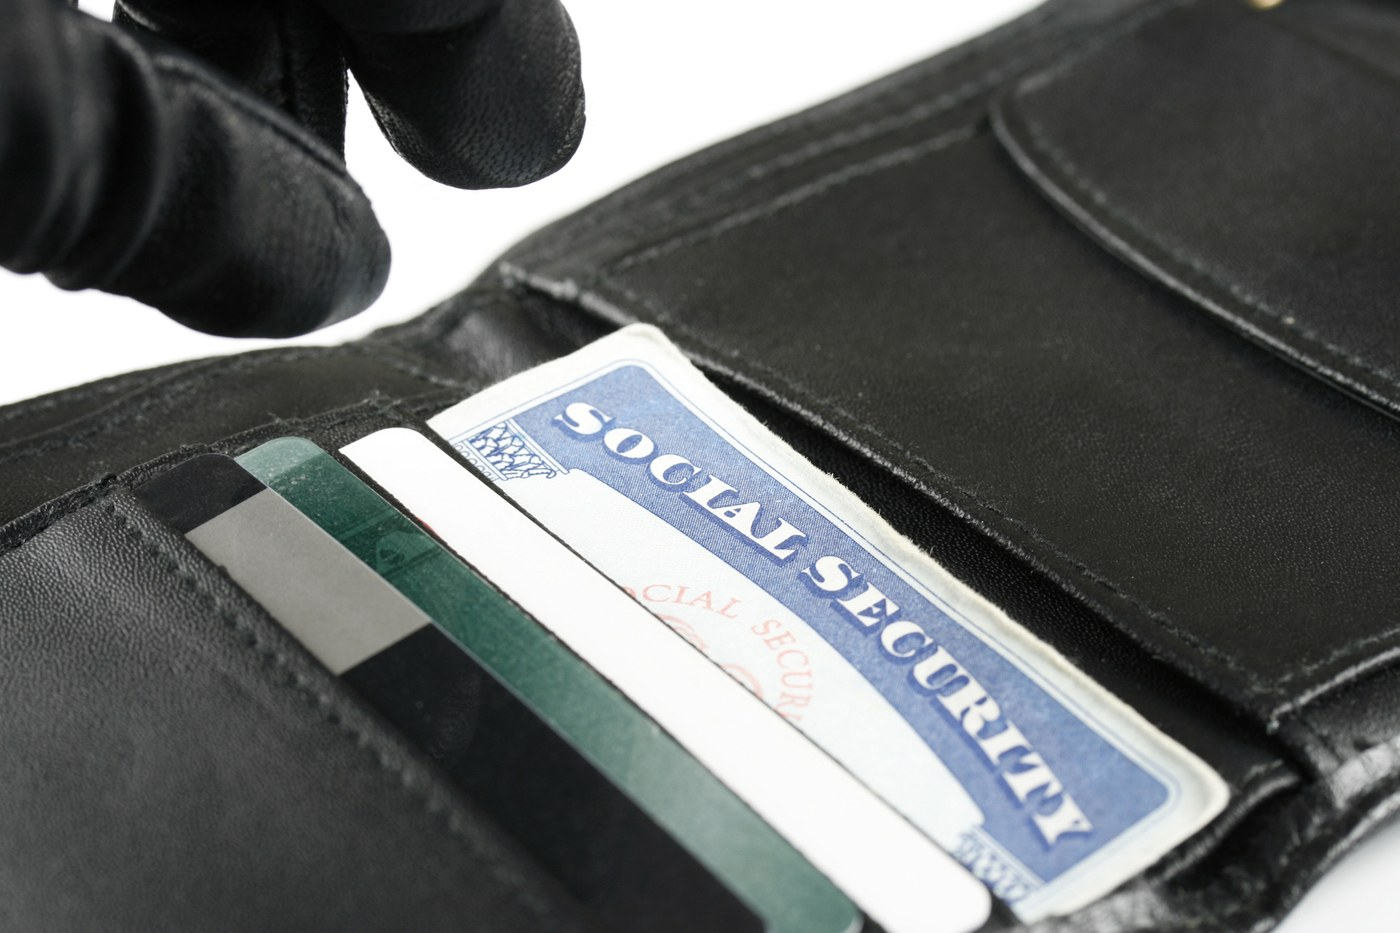 A gloved thief reaches for a Social Security card in a stolen wallet